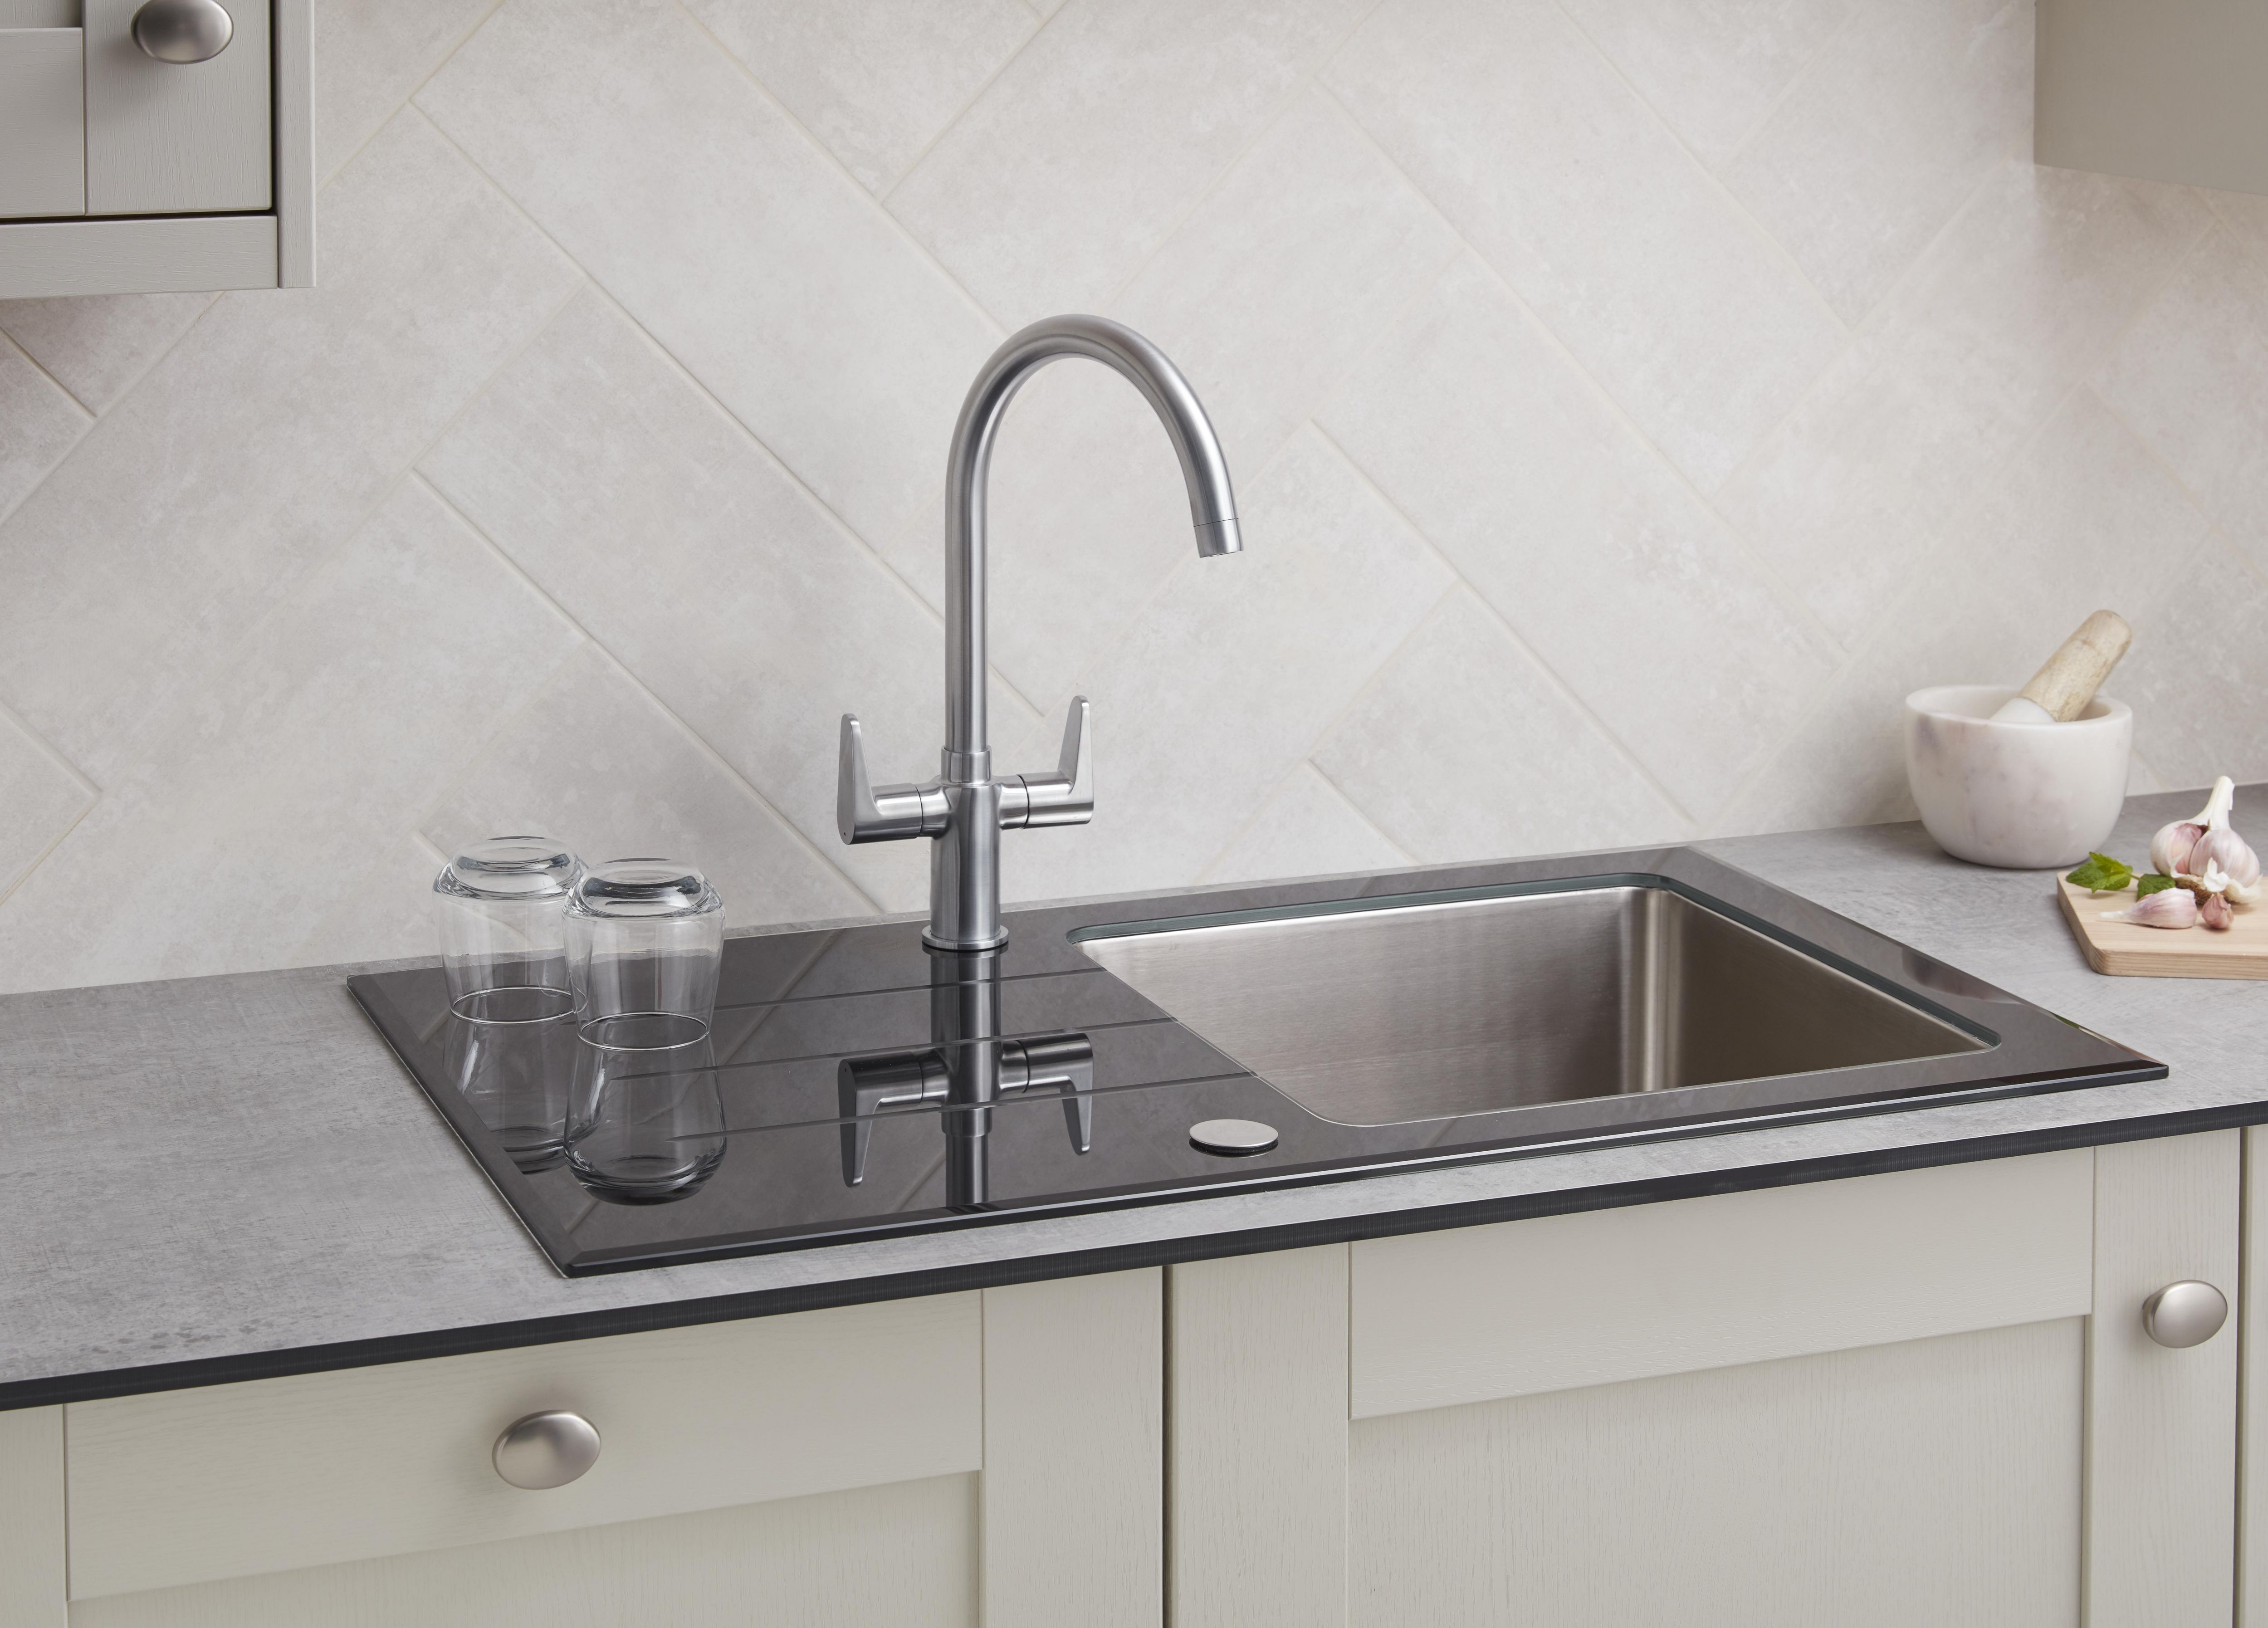 What Best Paint To Refinish A Black Ceramic Kitchen Sink